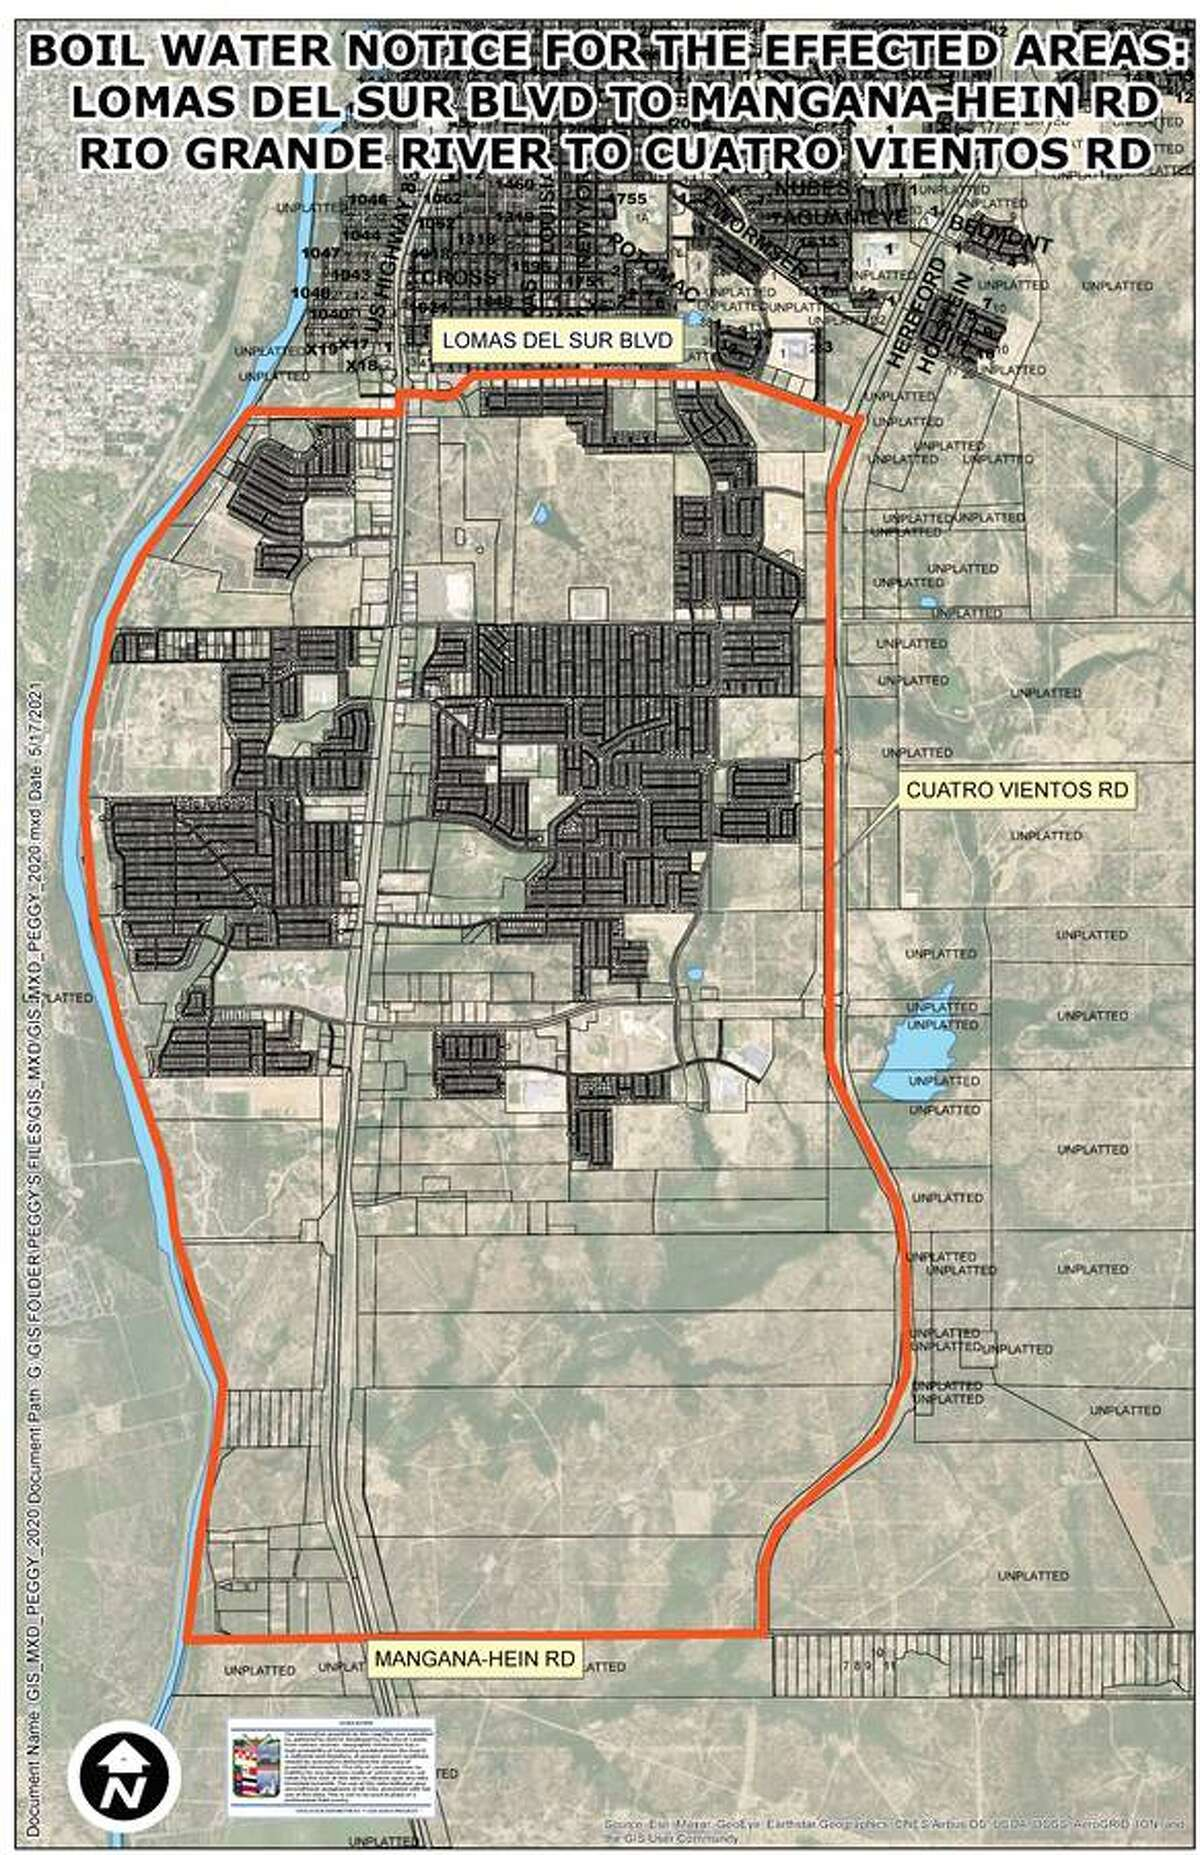 This map shows the area affected by the boil water notice issued by the City of Laredo.